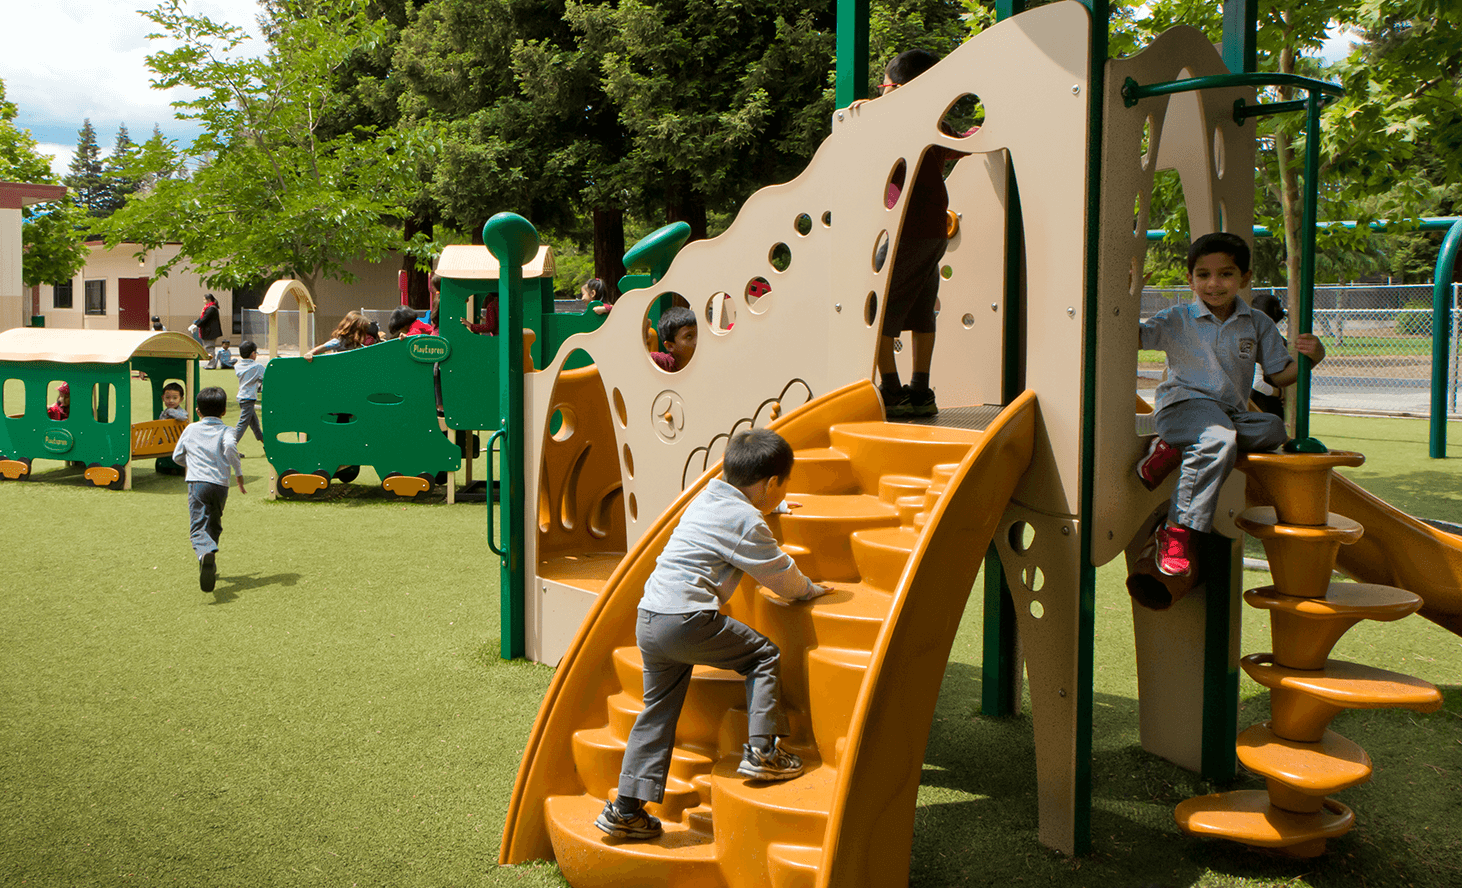 Preschool Playground | Challenger School - Sunnyvale | Private School In Sunnyvale, California